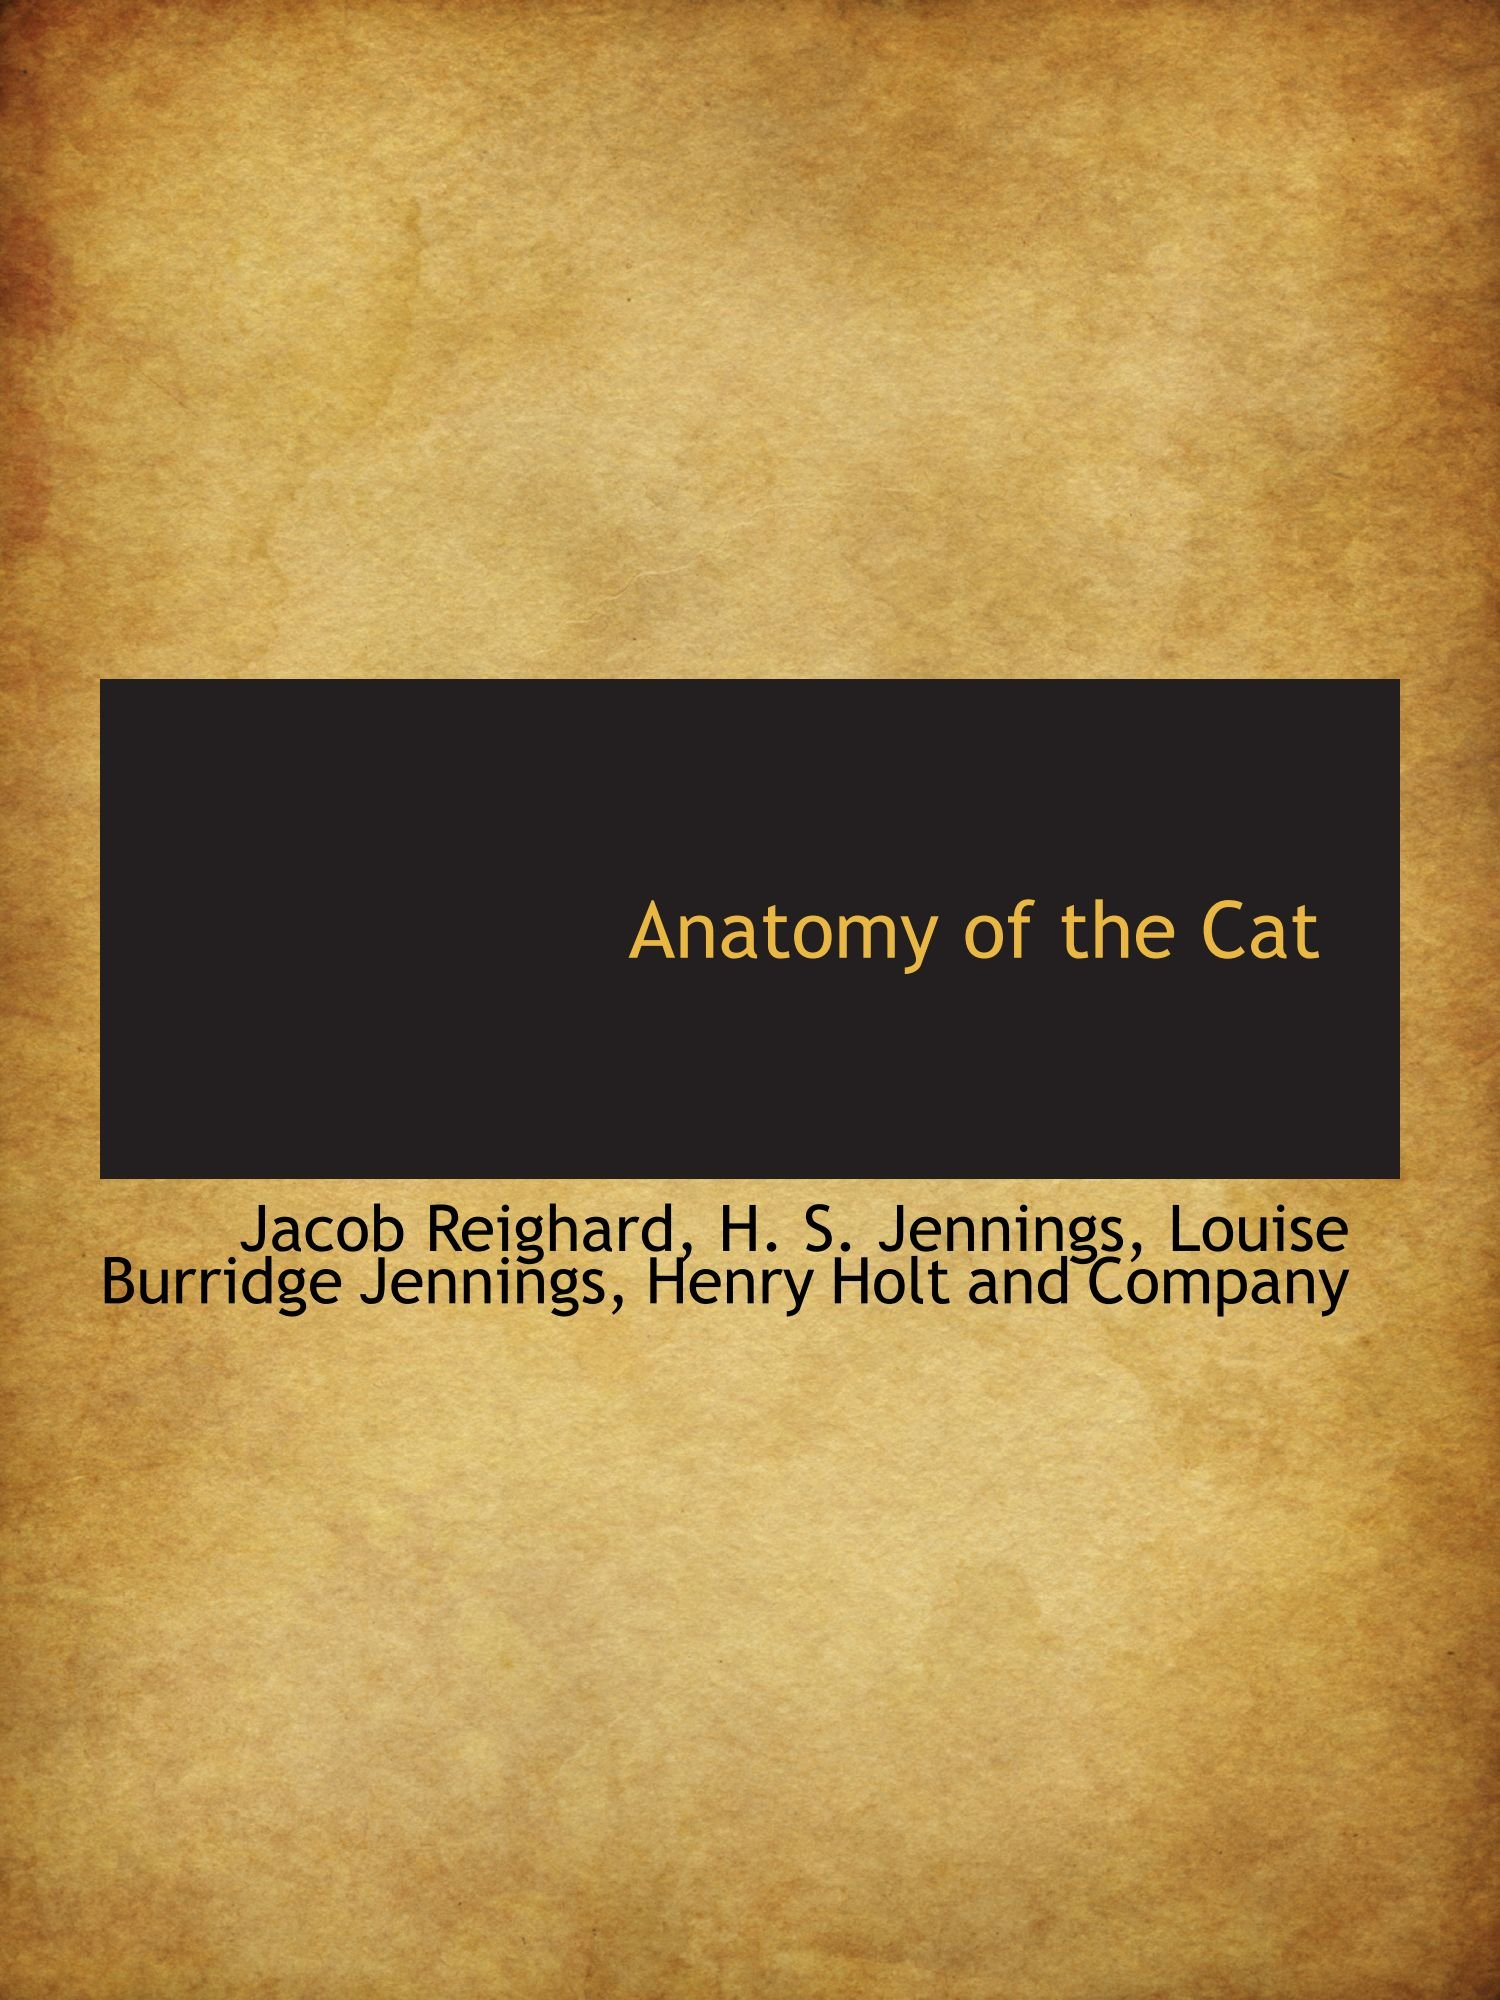 Buy Anatomy of the Cat Book Online at Low Prices in India | Anatomy ...